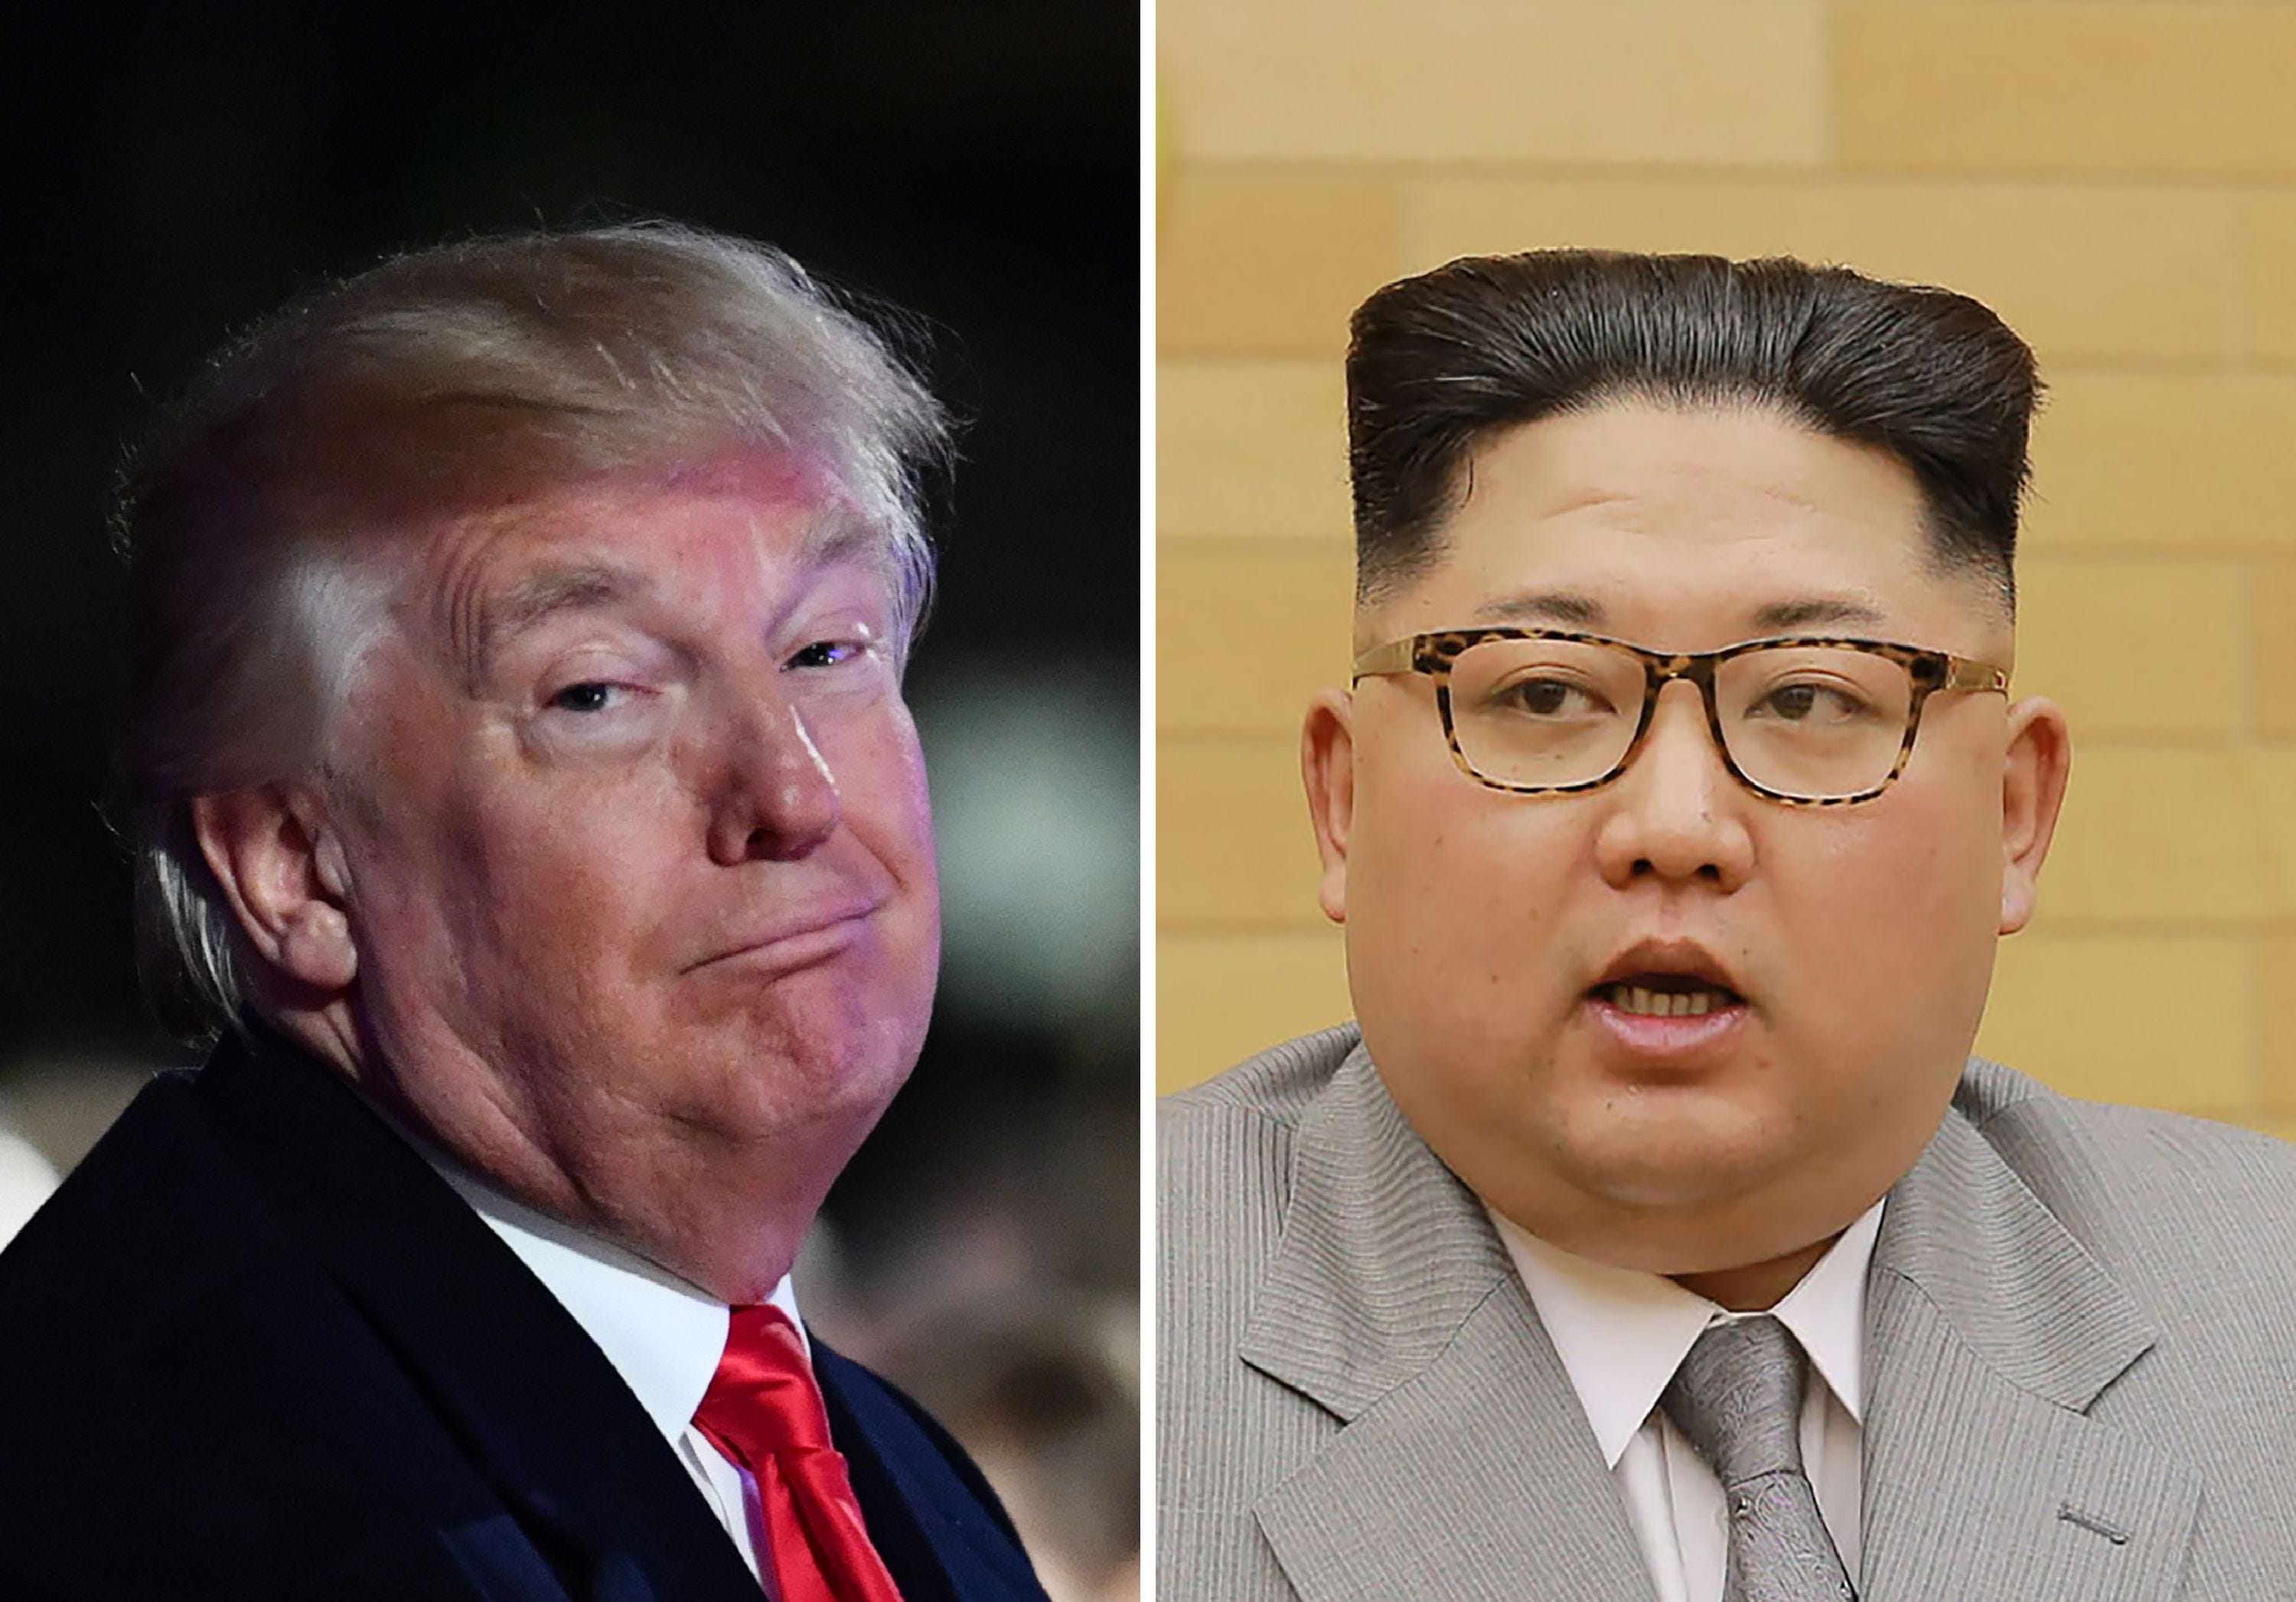 Donald Trump, Kim Jong Un hold a role reversal summit: Meet first, then deal